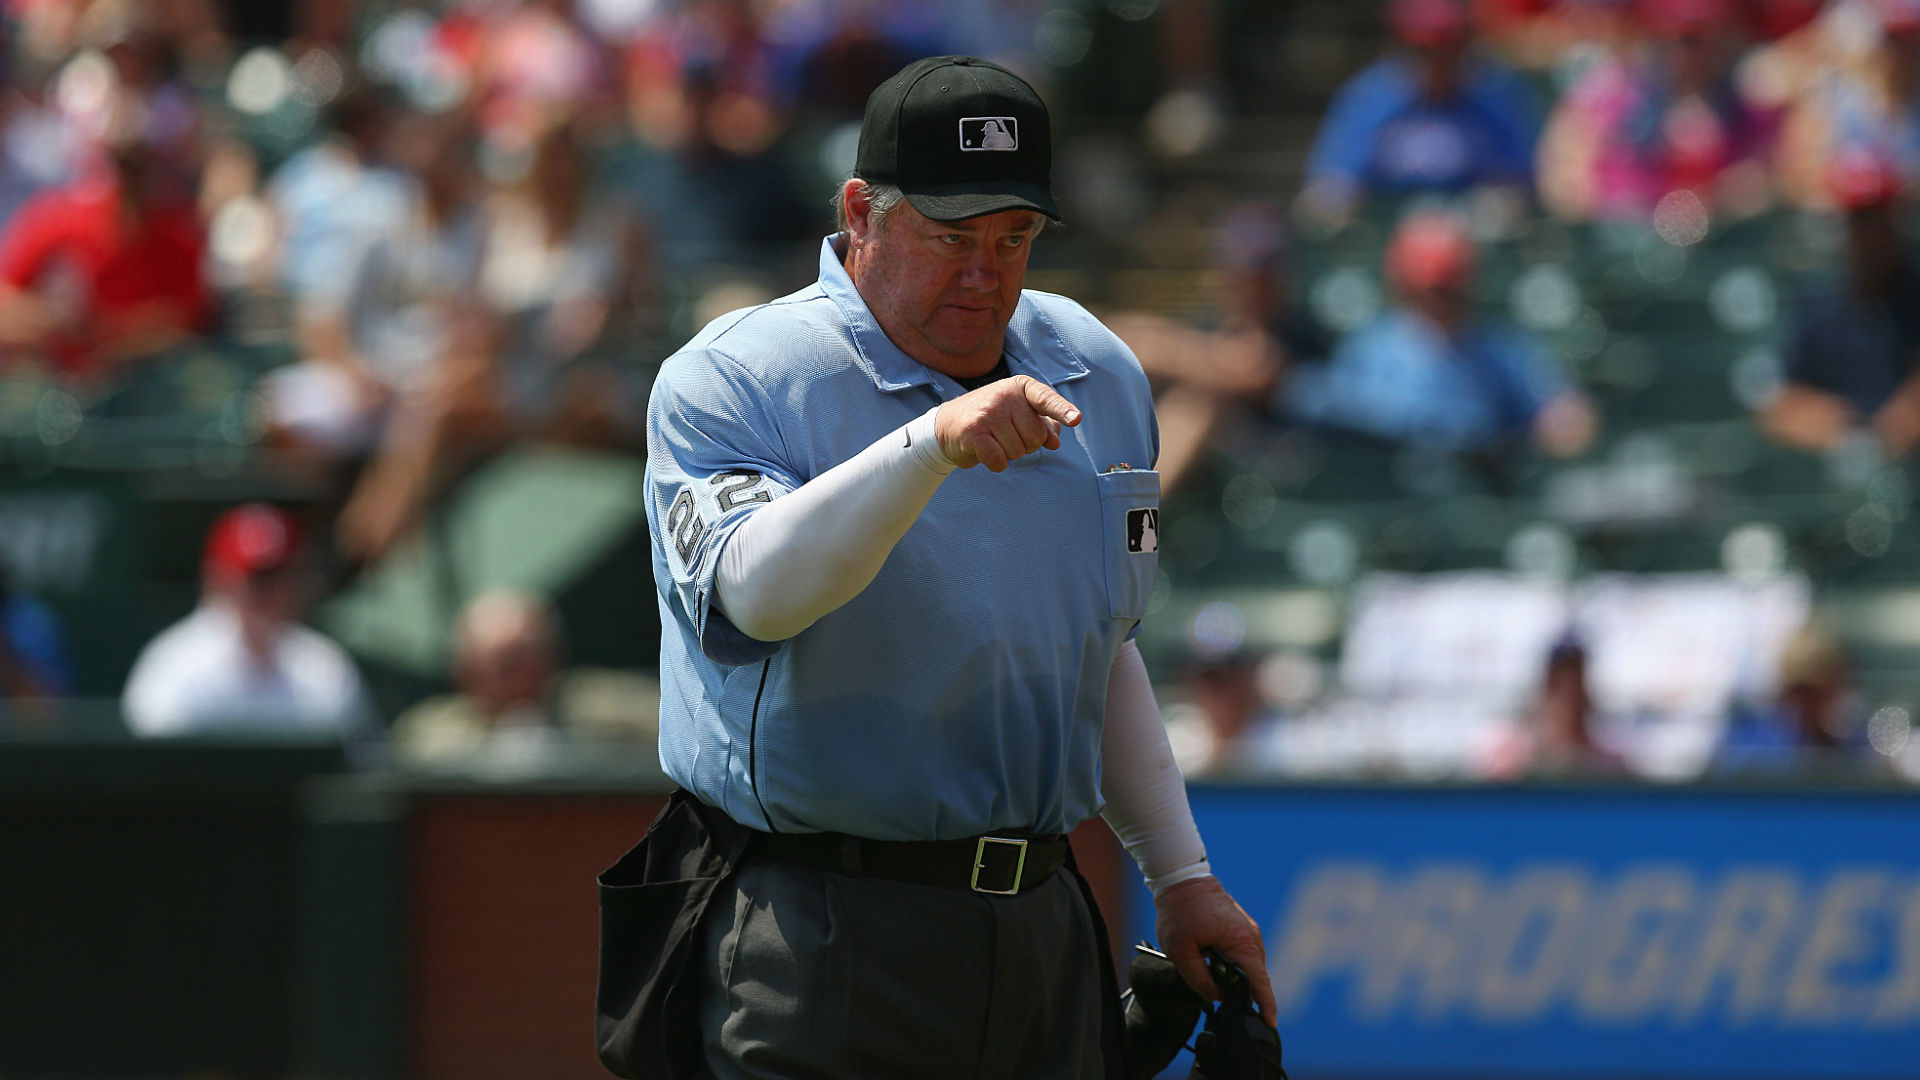 Joe West Suspended Three Games For Comments About Adrian Beltre